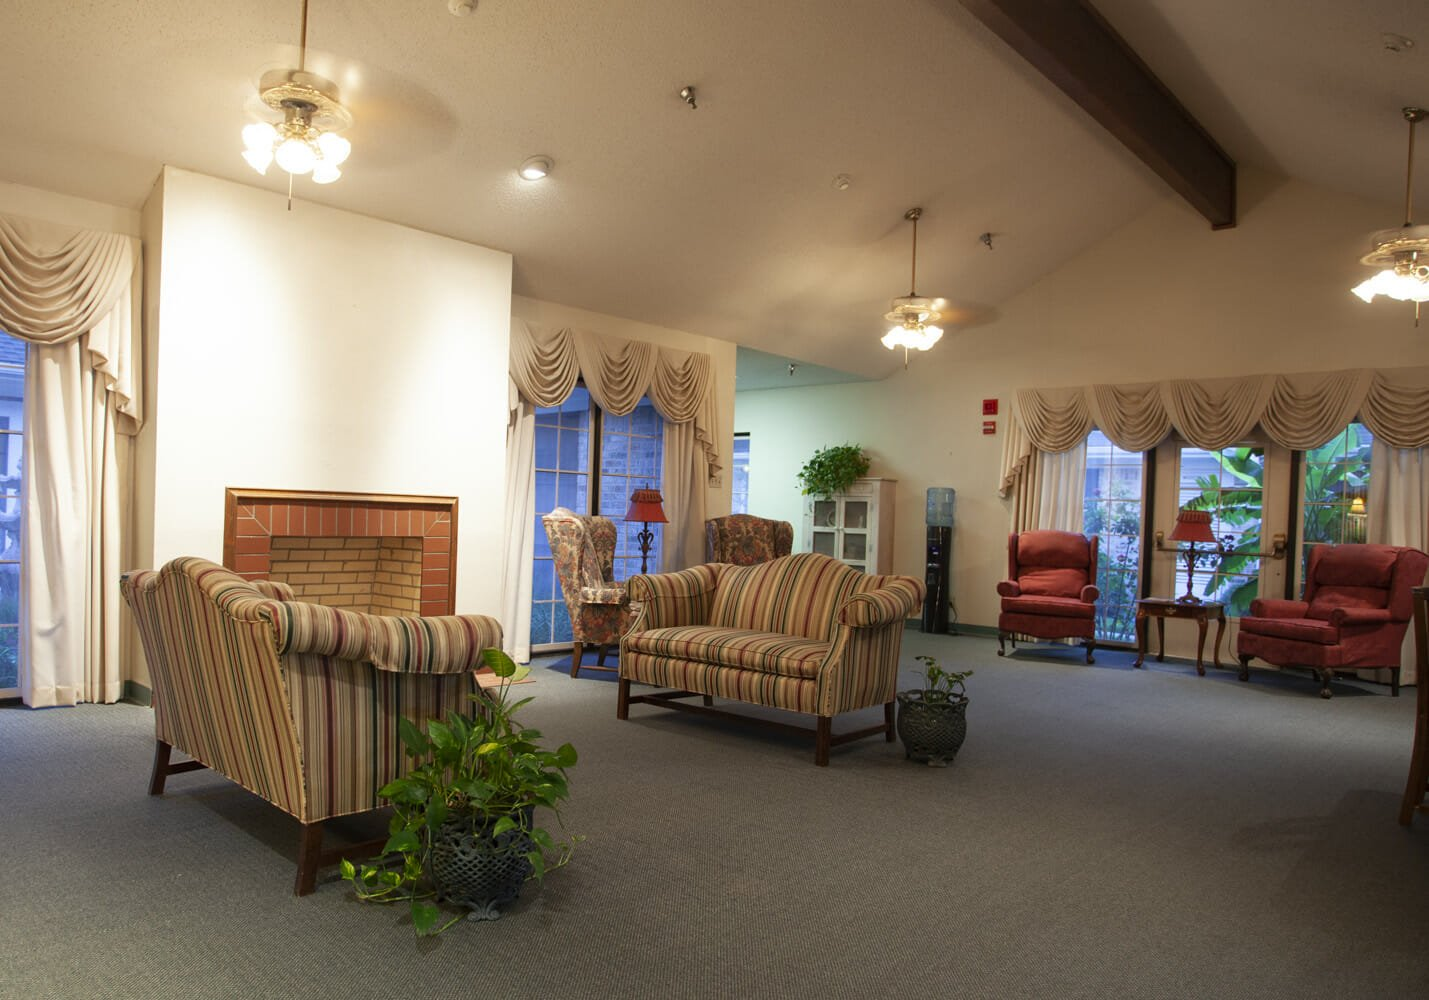 Real Estate Photography of Reception Room of Business